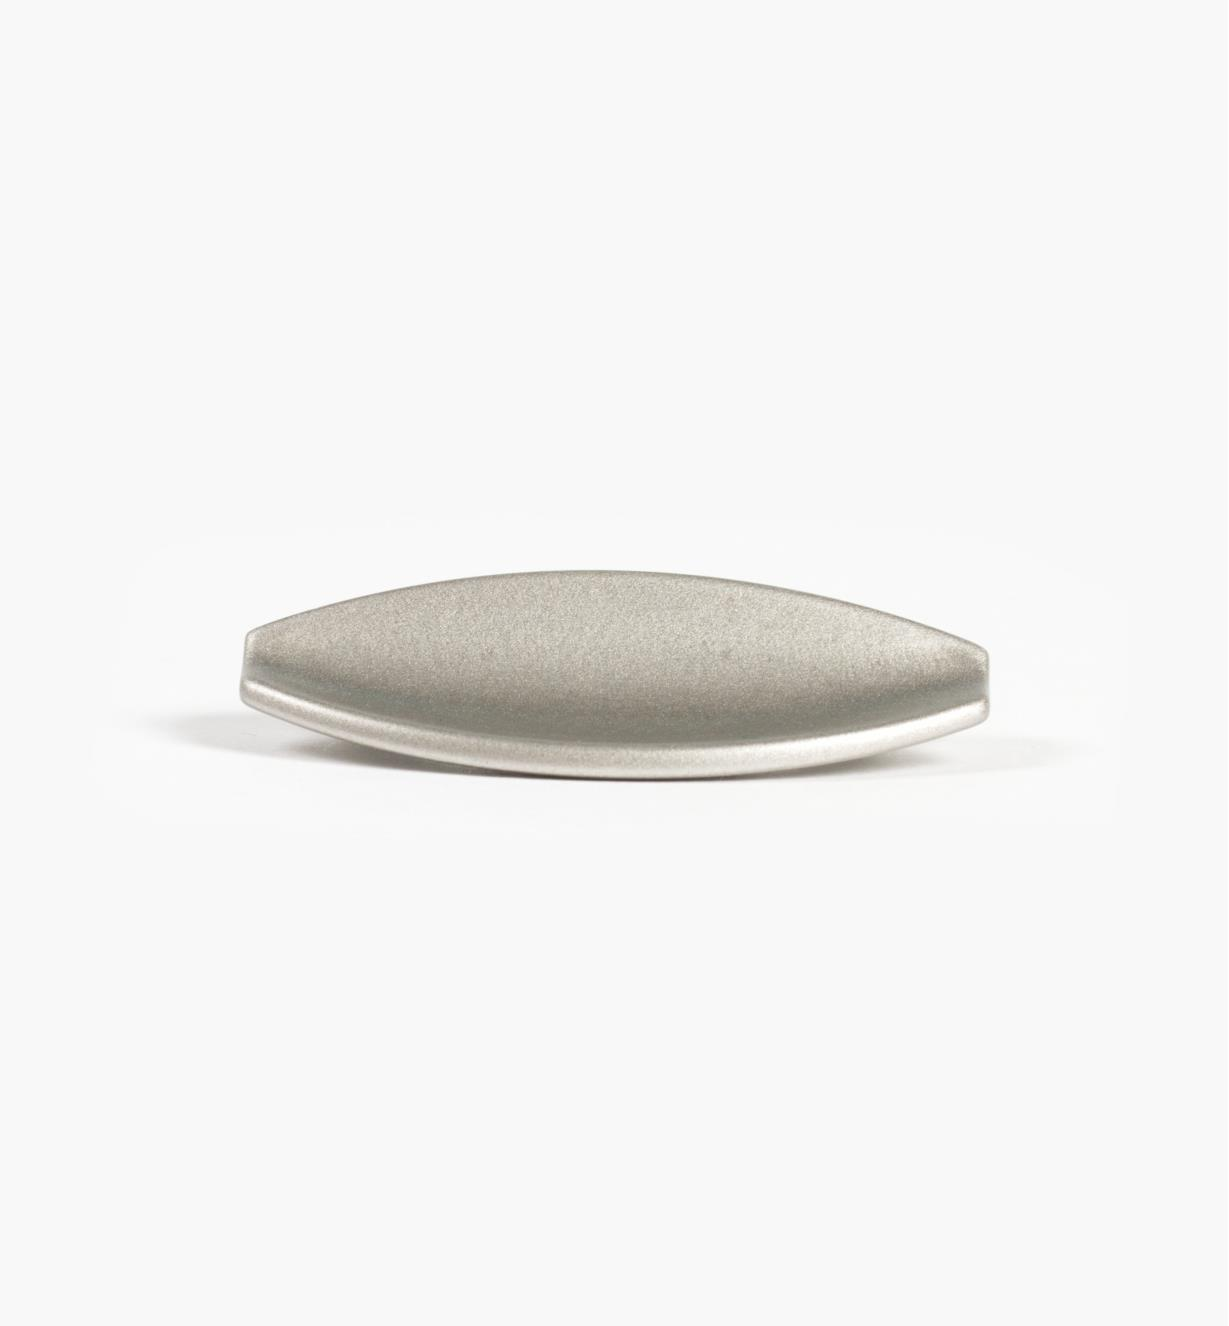 02W3925 - 32mm x 20mm Palladium Rounded Flap Pull